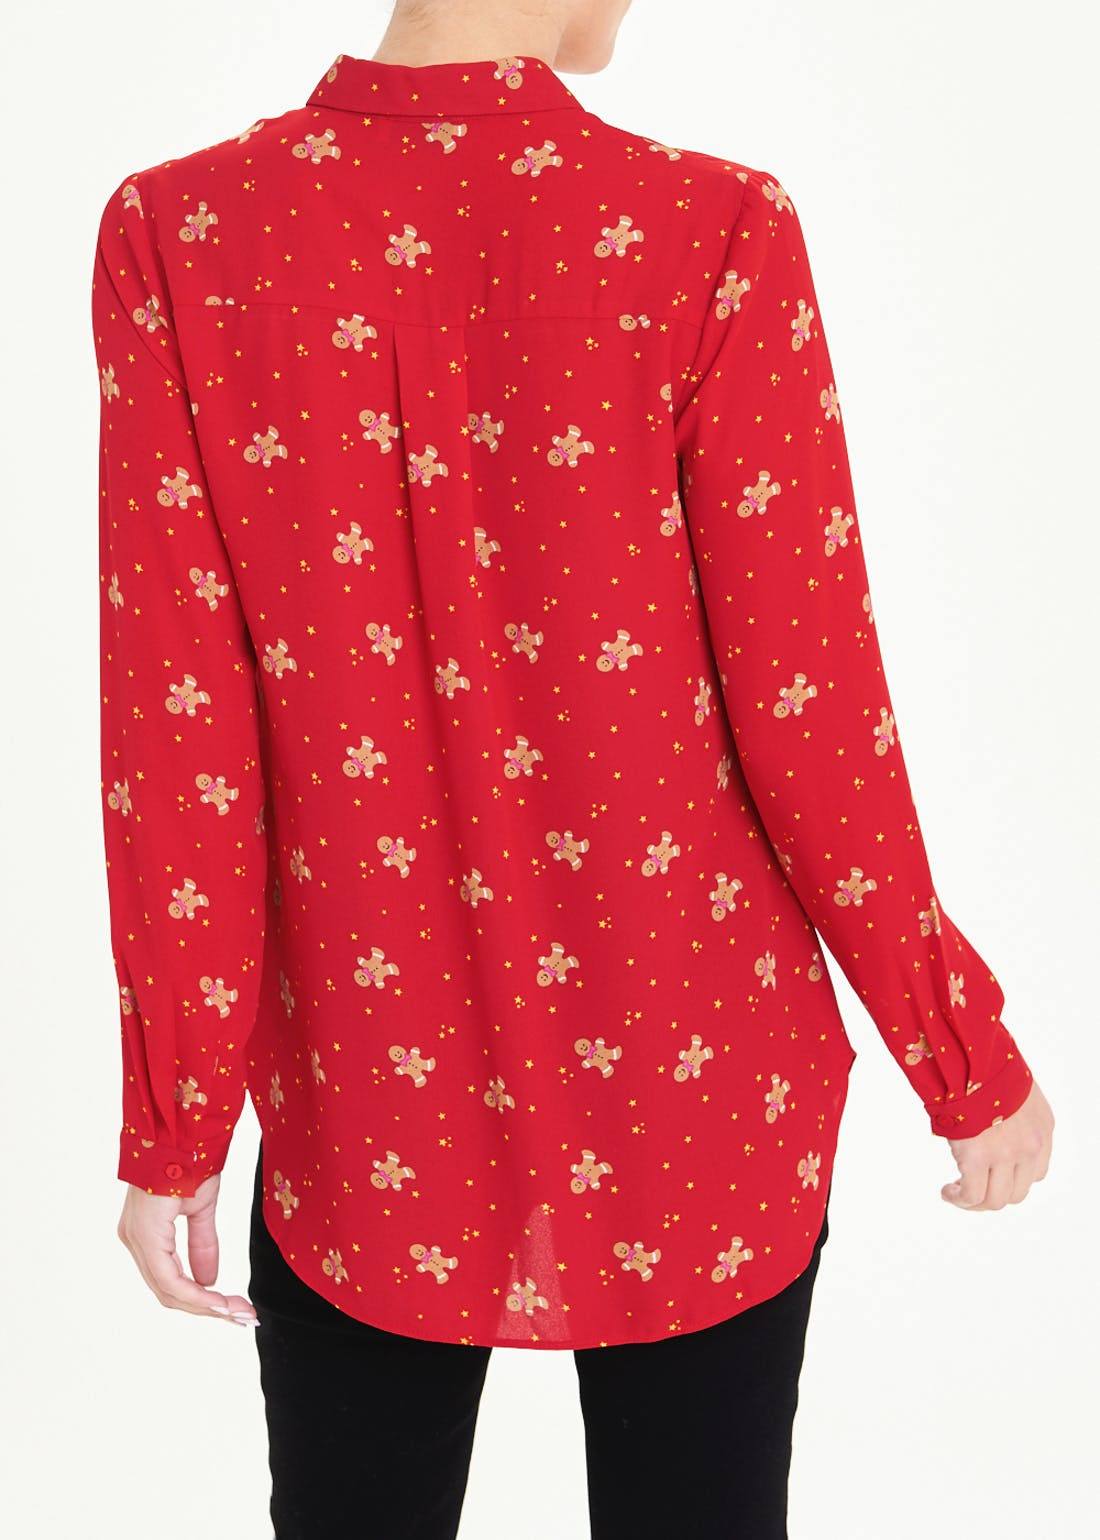 Red Gingerbread Man Christmas Shirt